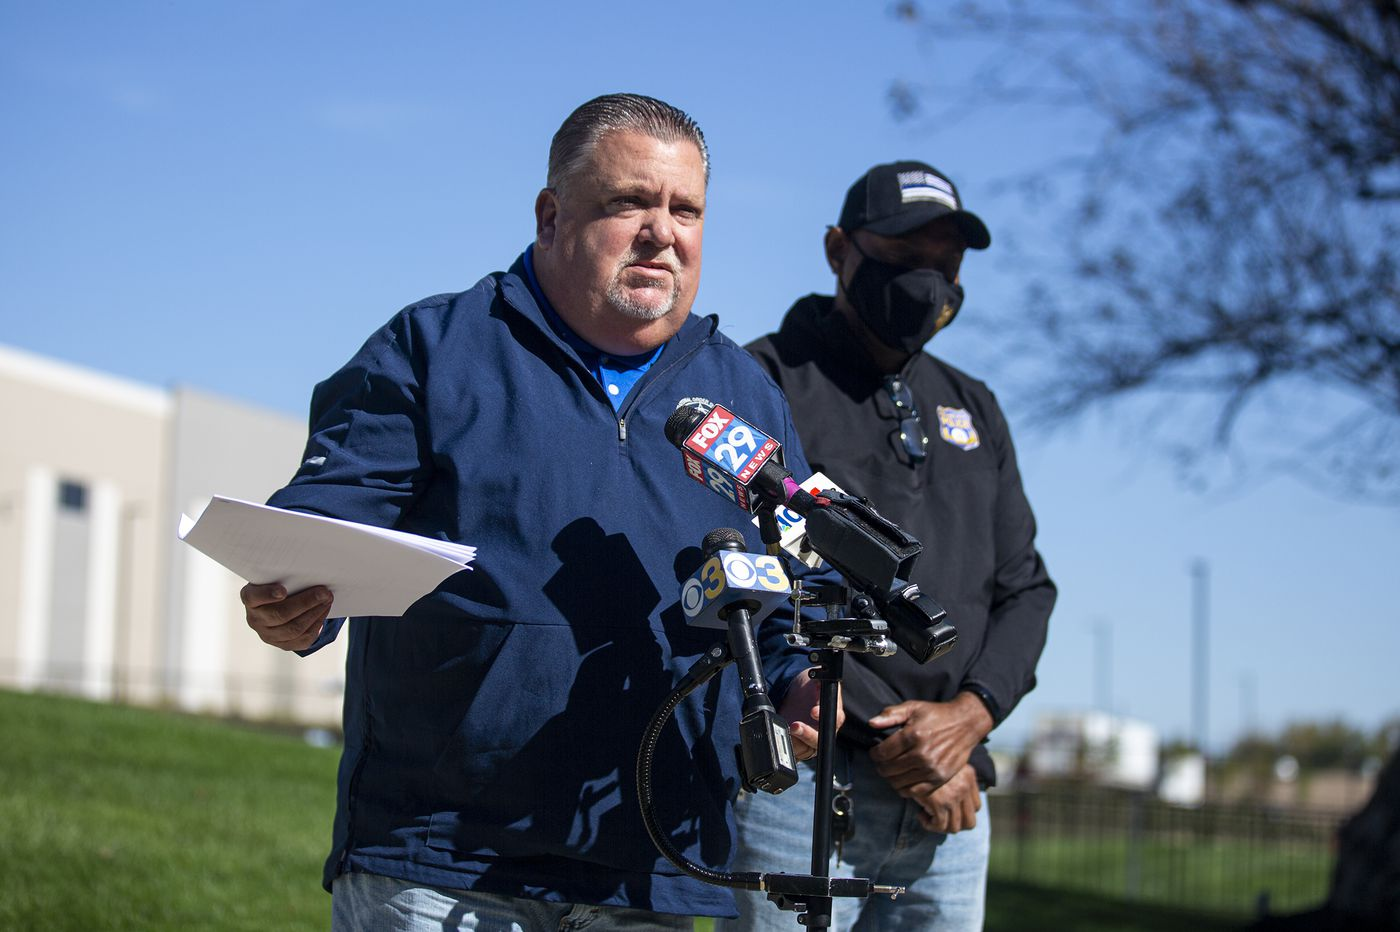 Philly's FOP sues the city over requirement for public hearing on police contracts